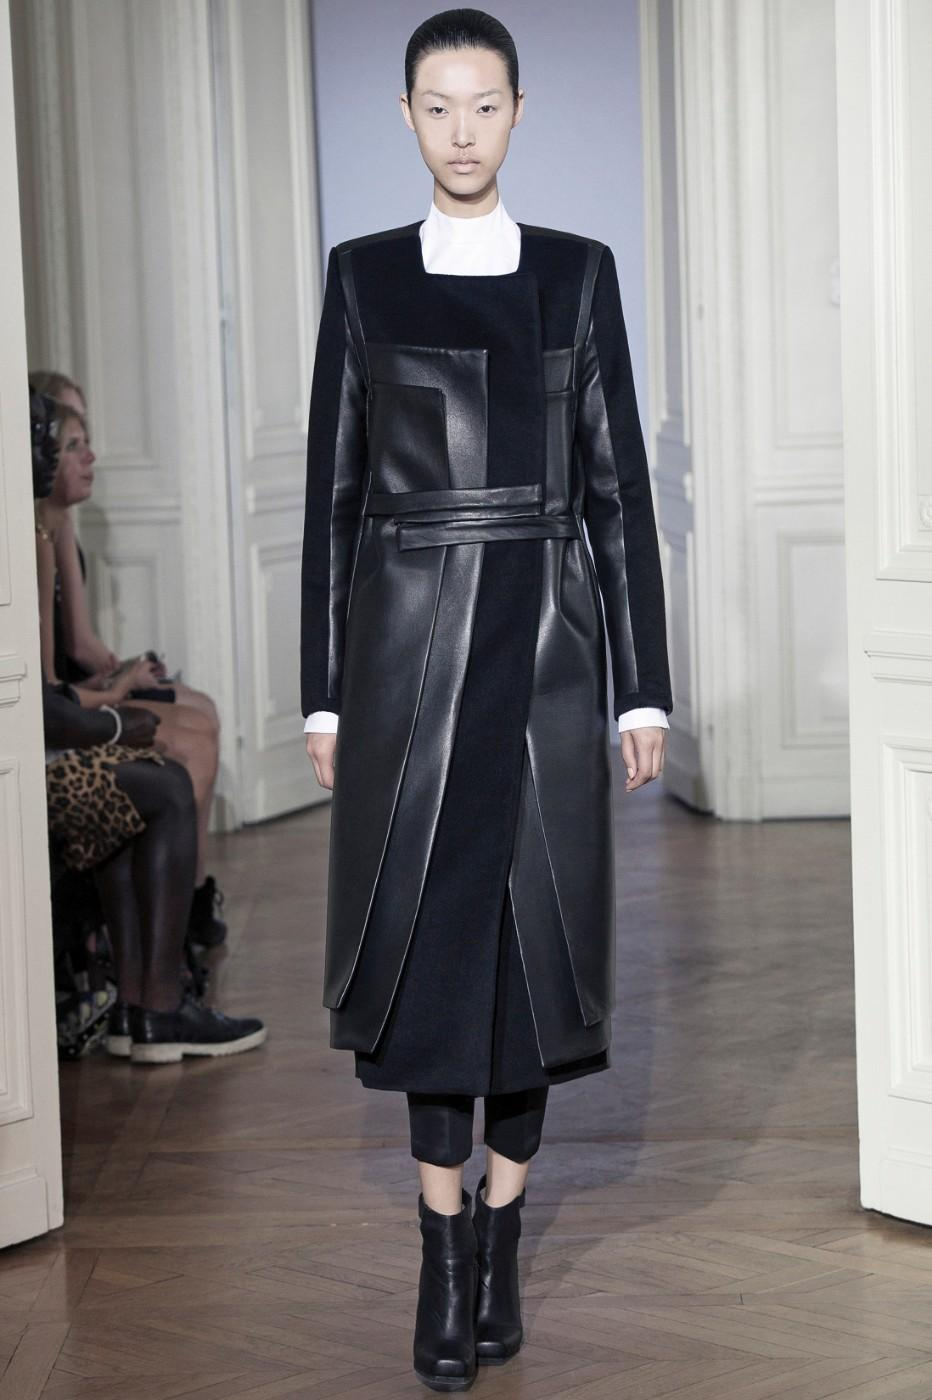 Unisex Couture Look #3 – Coat – From Rad Hourani Unisex Couture Collection #9 Paris, Fall/Winter 2012. Rad Hourani (Canadian, born in Jordan 1982).